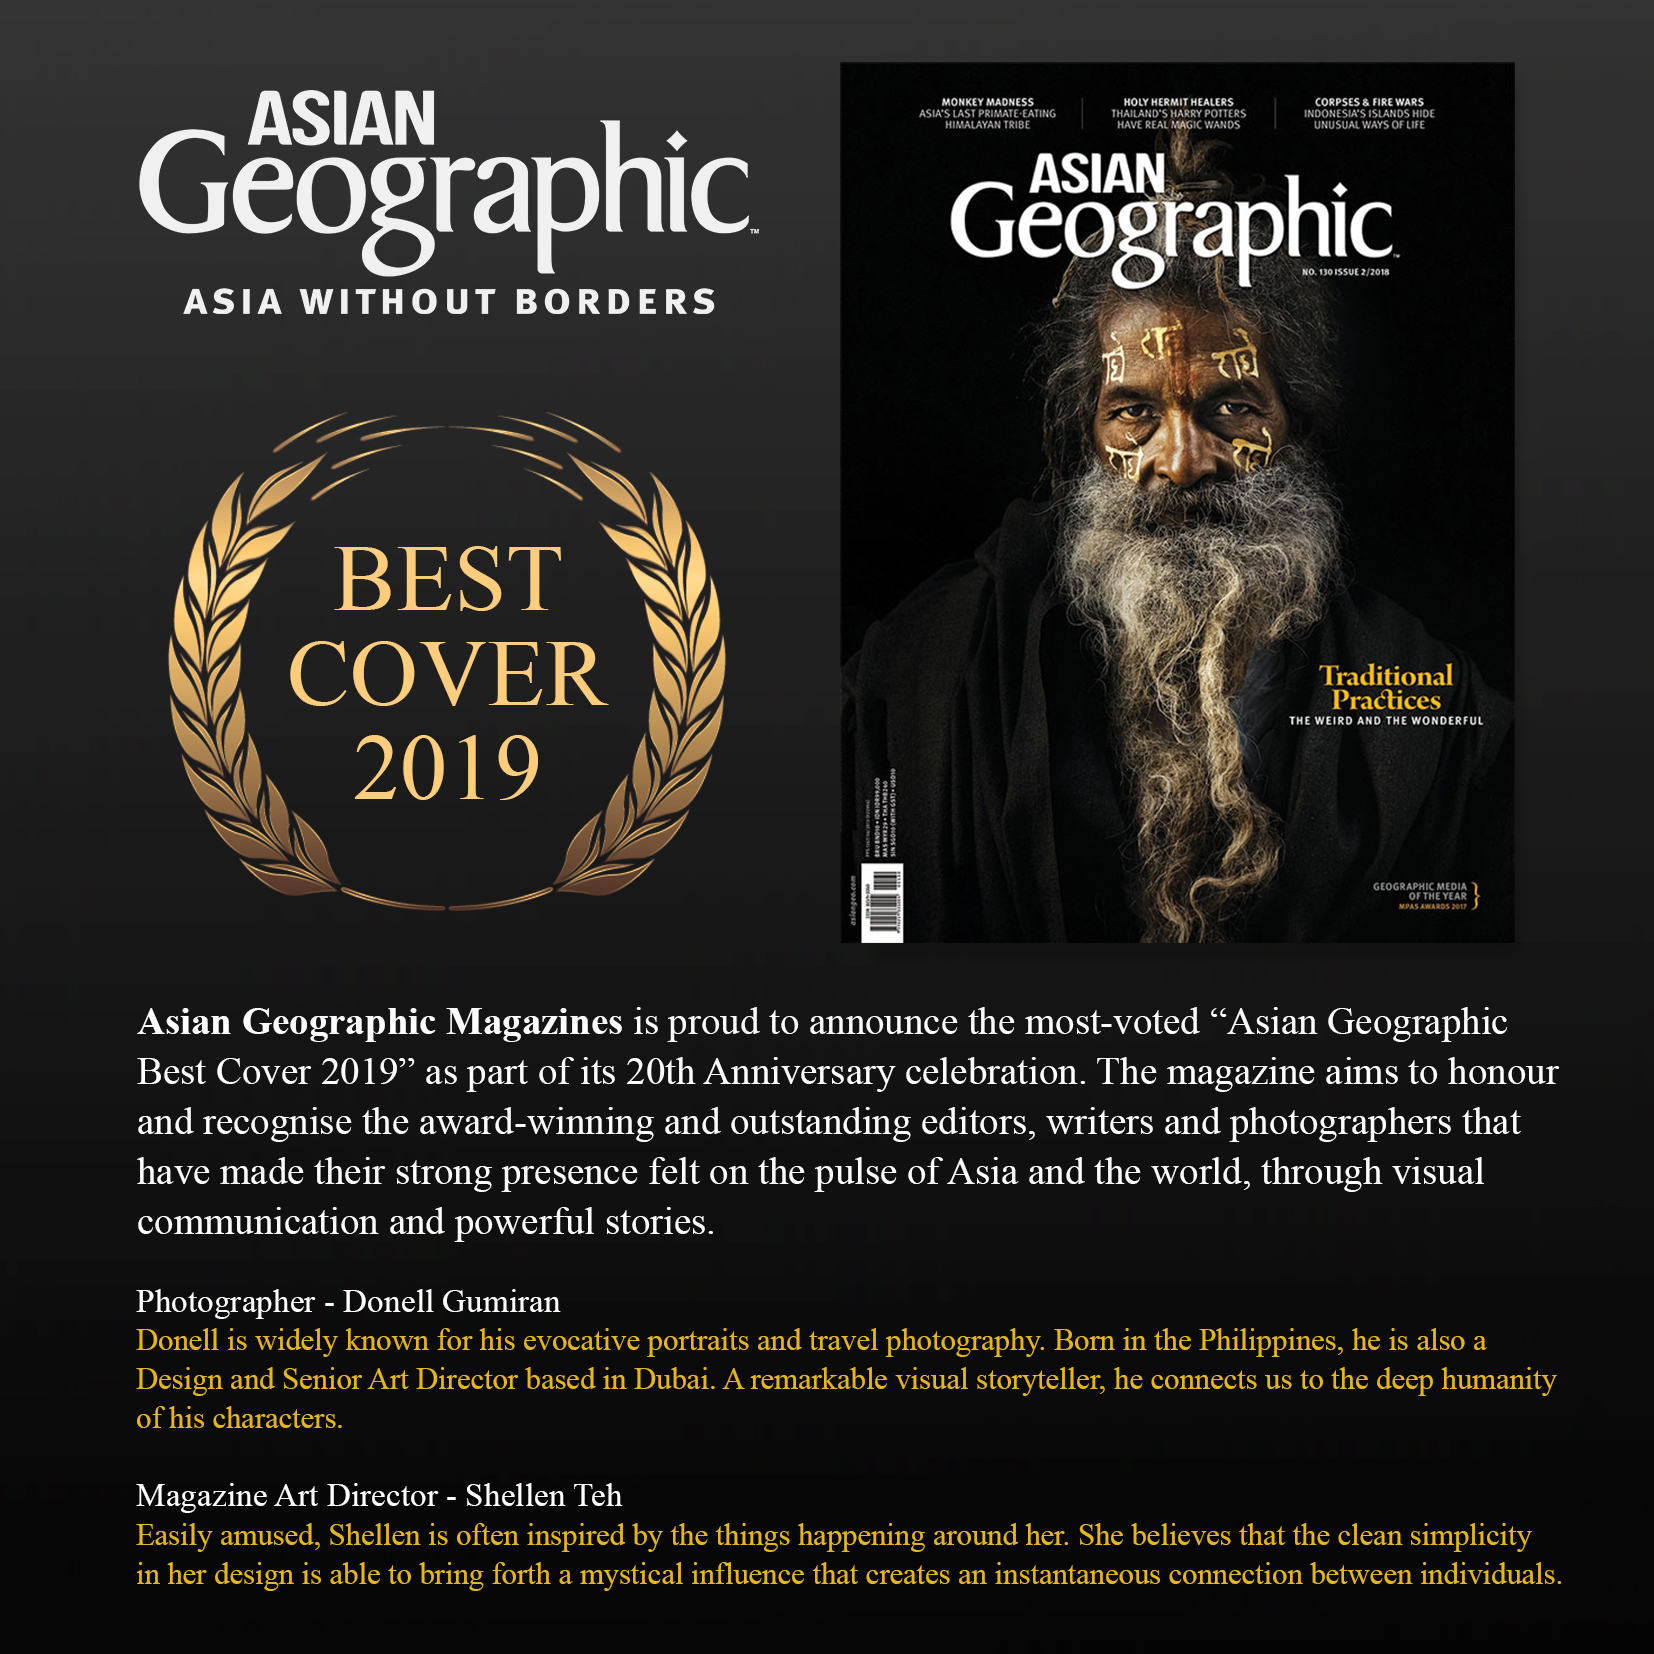 Asian Geographic Best Cover 2019 Donell Gumiran and Shellen Teh